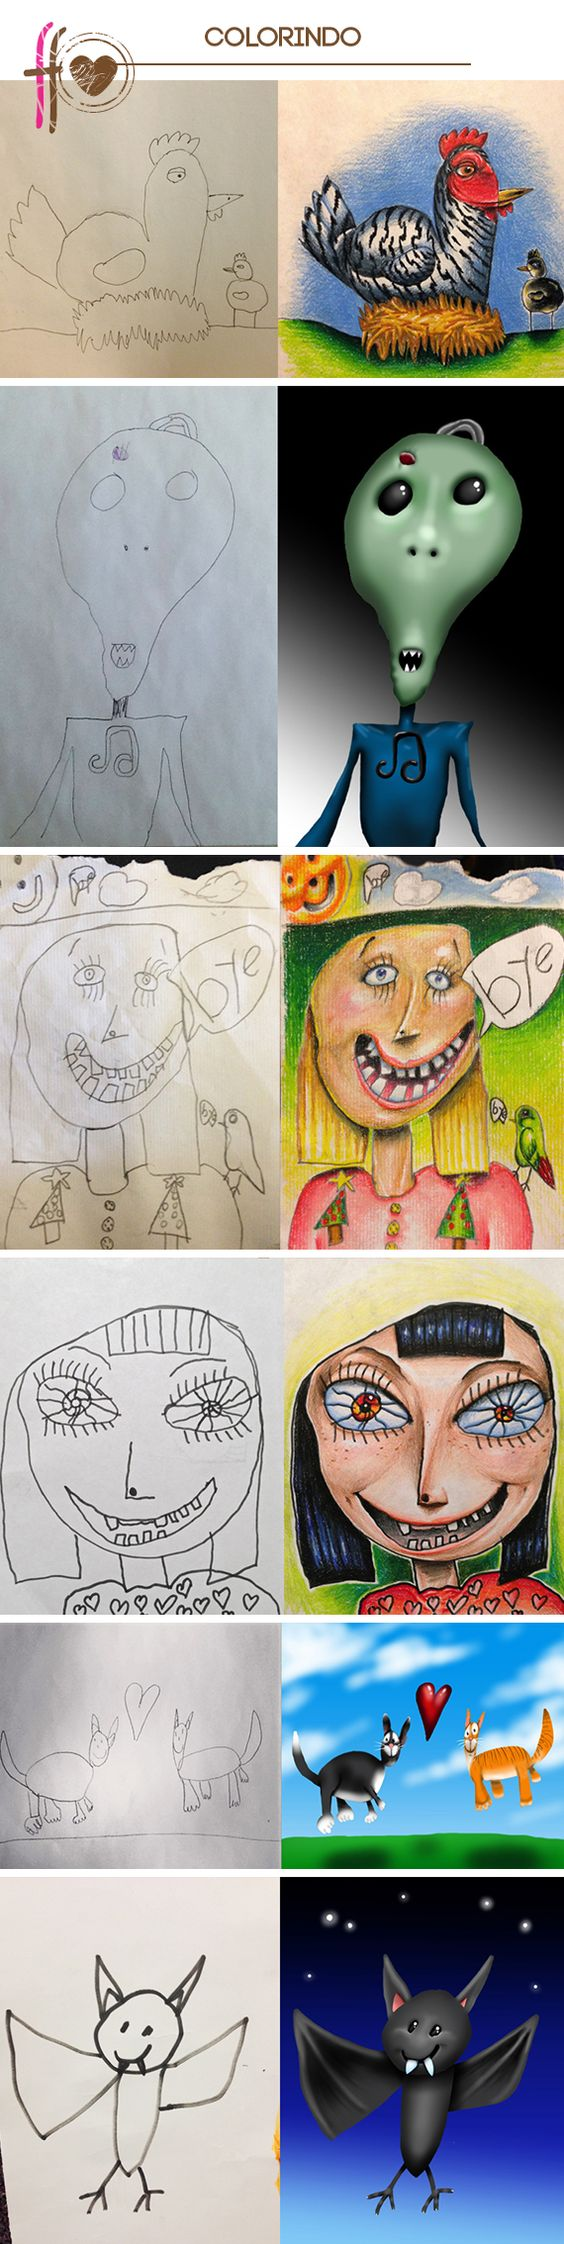 father colors sons' drawings